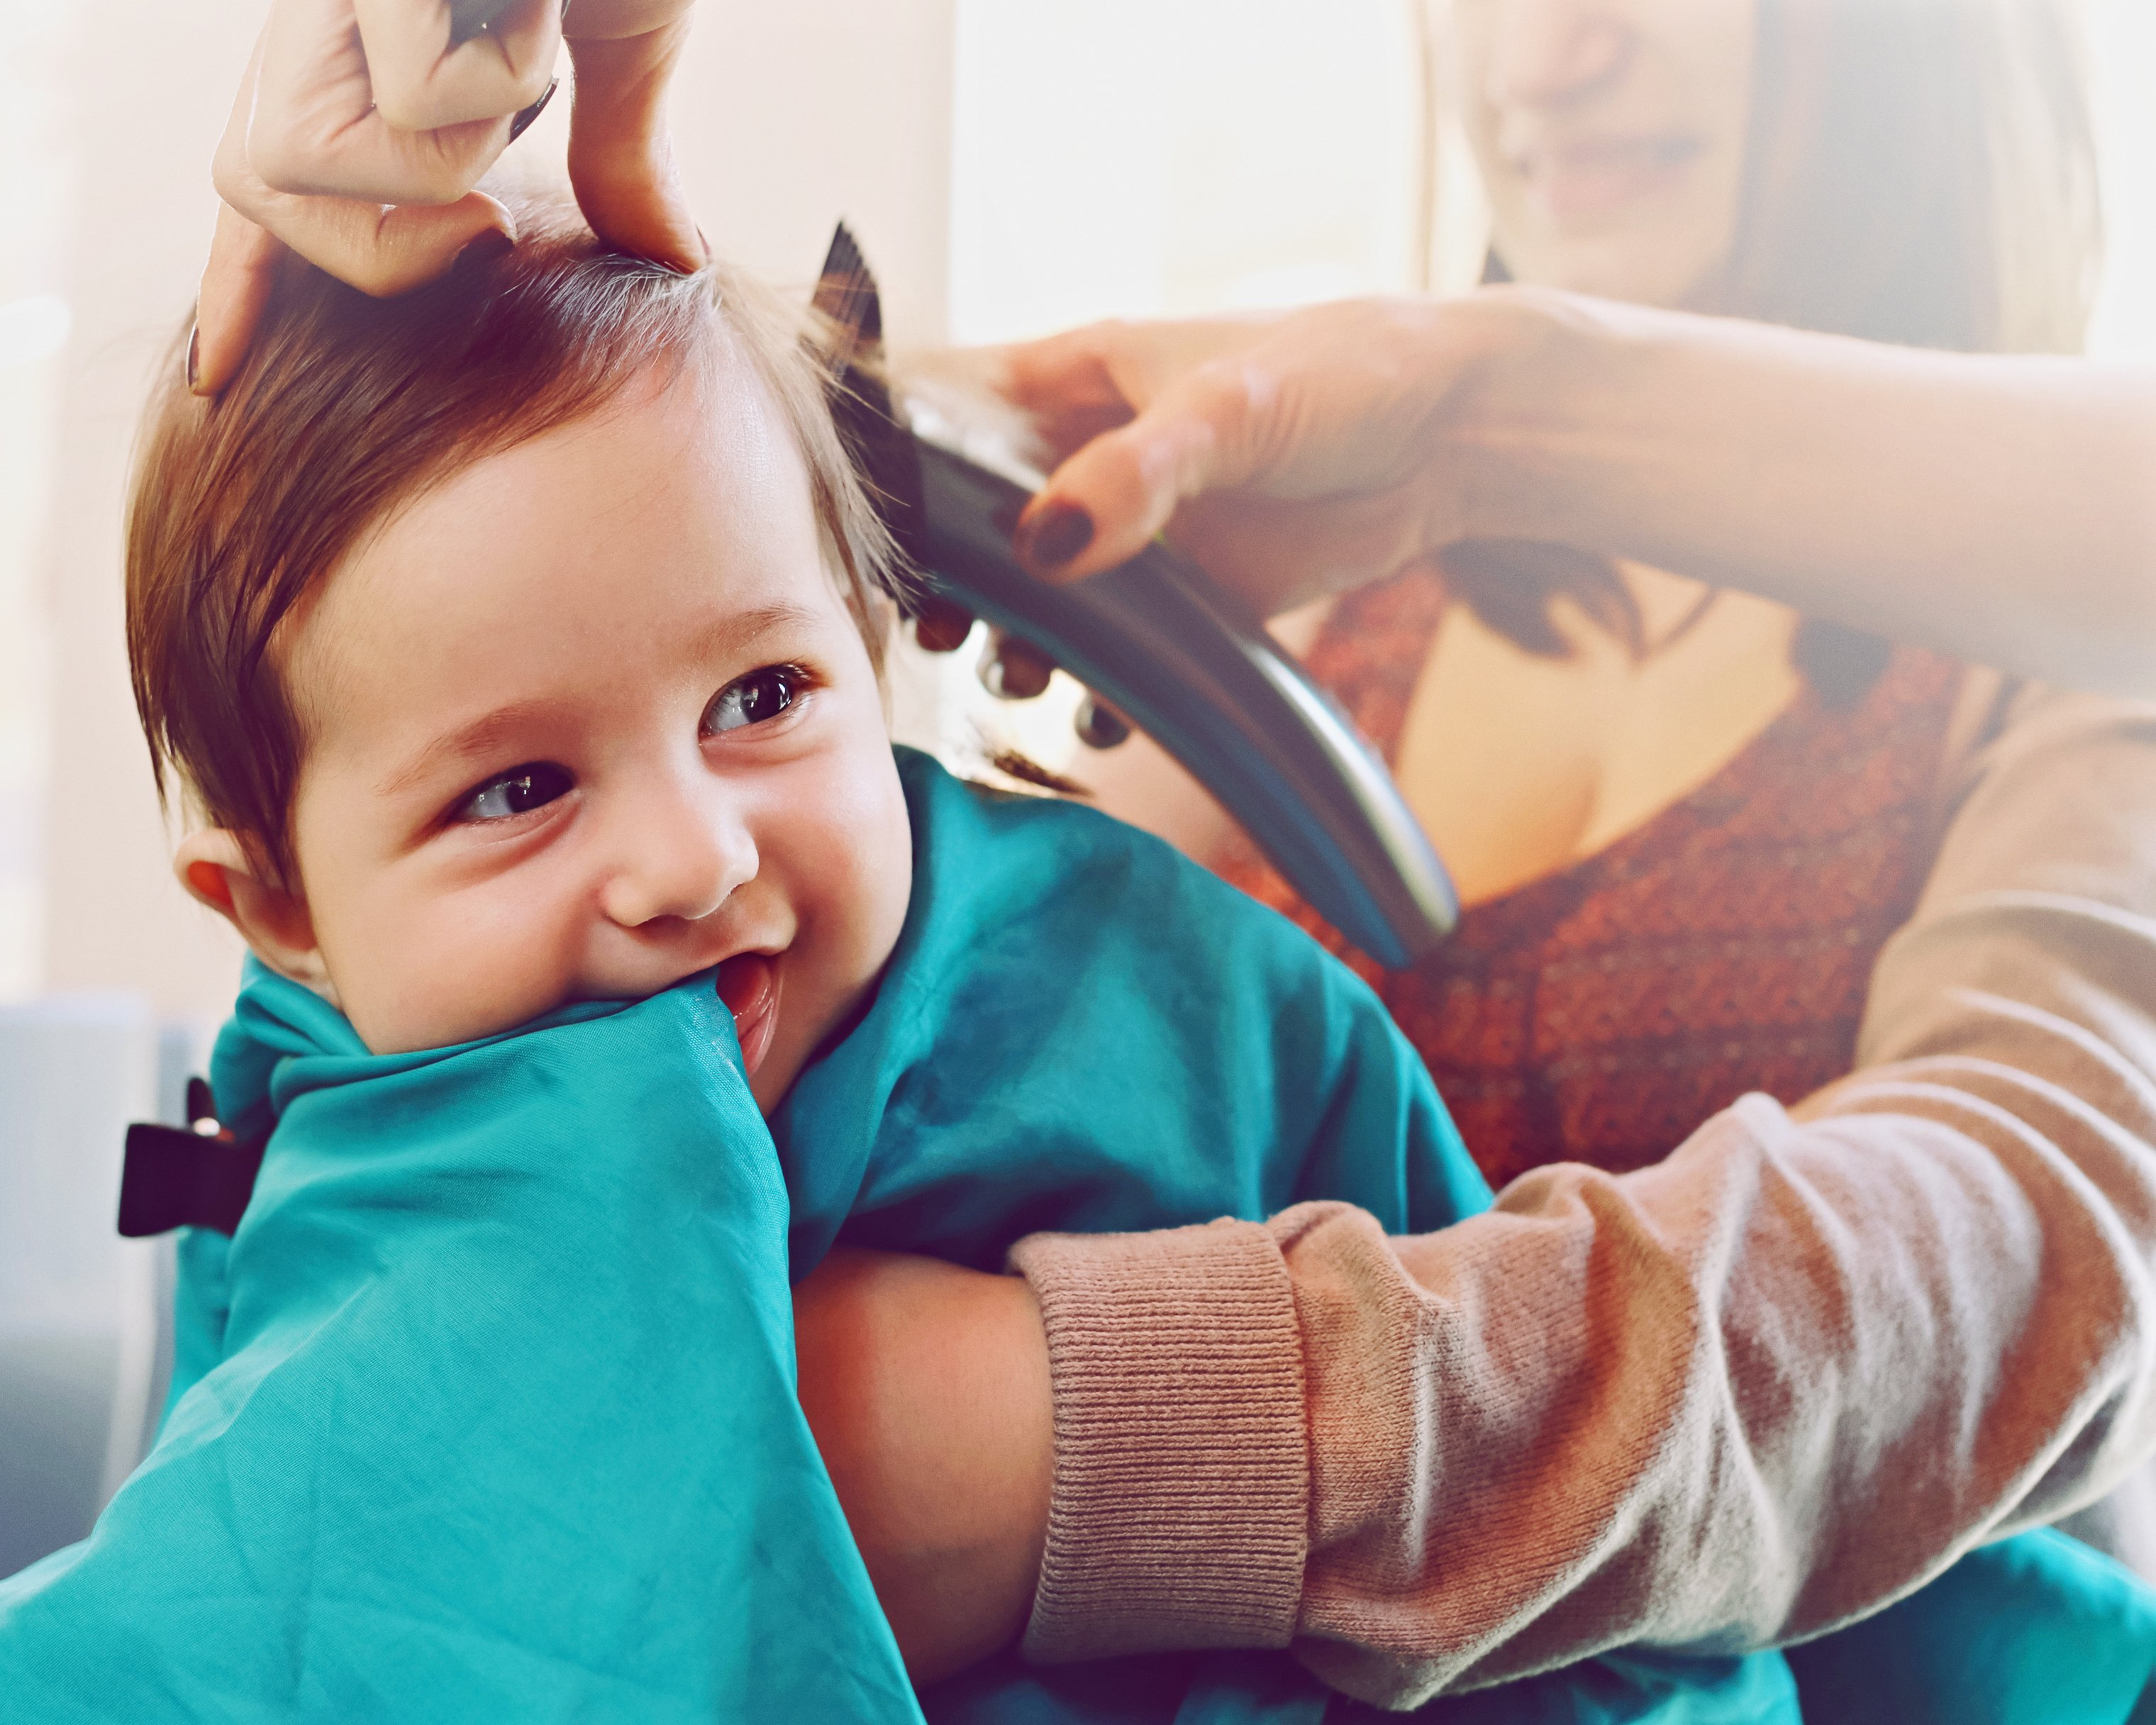 Baby sitting at the hair salon, | Photo: Getty Images